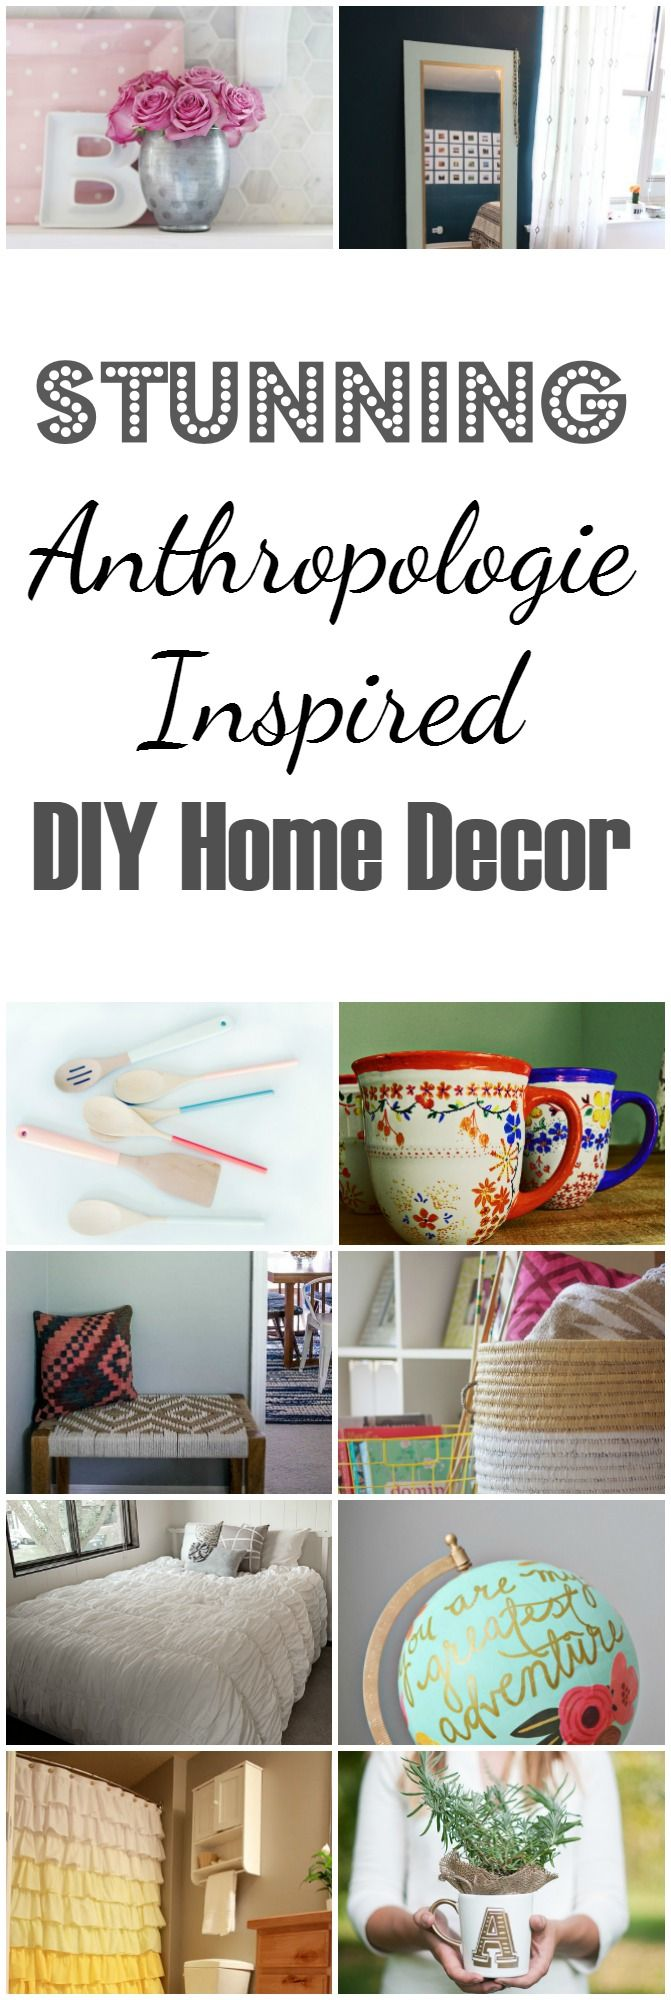 Anthropologie inspired diy home decor hacks furniture Anthropologie home decor ideas